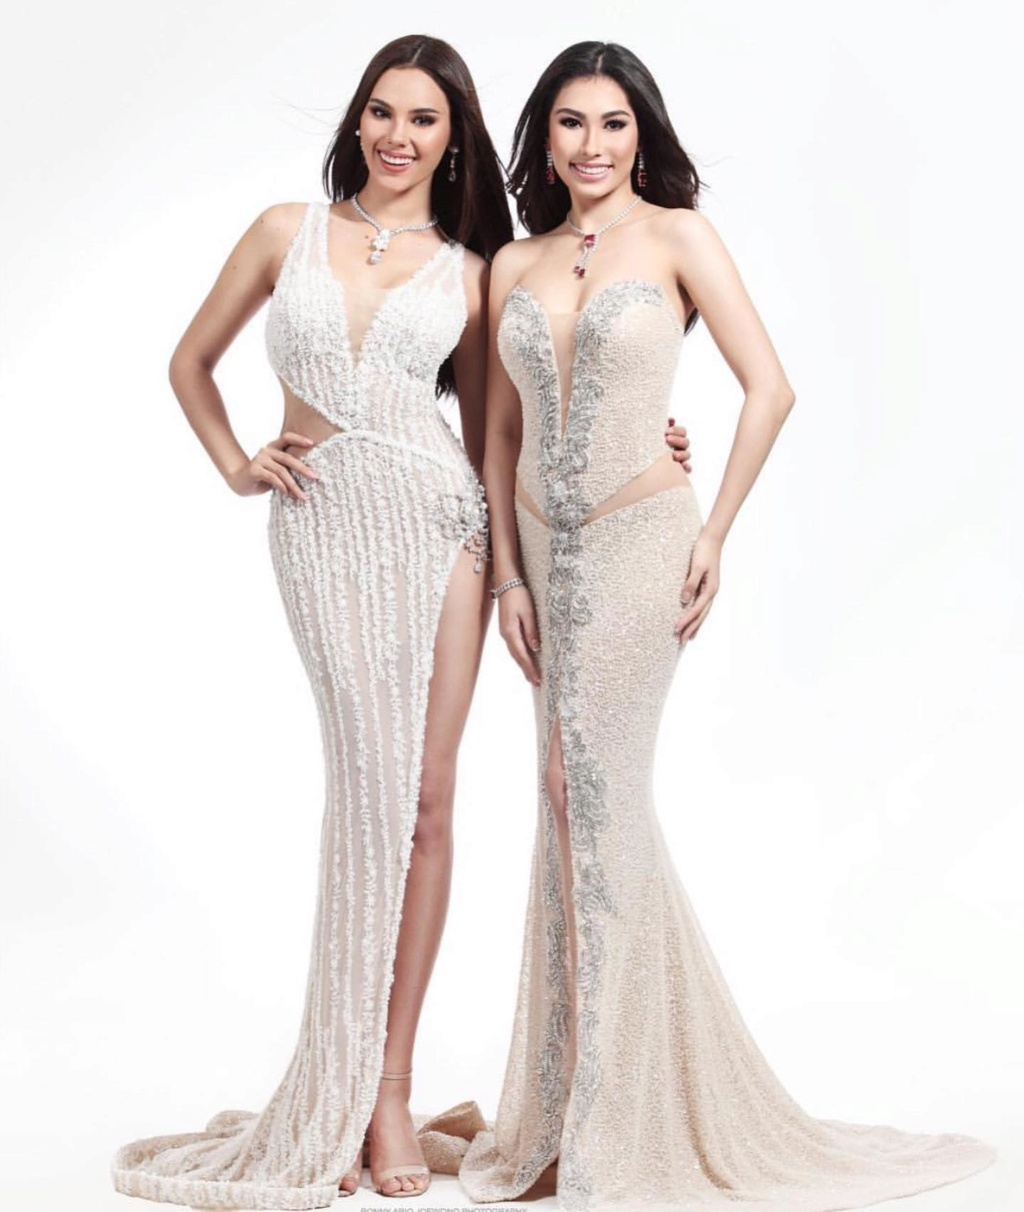 ♔ The Official Thread of MISS UNIVERSE® 2018 Catriona Gray of Philippines ♔ - Page 13 55702110